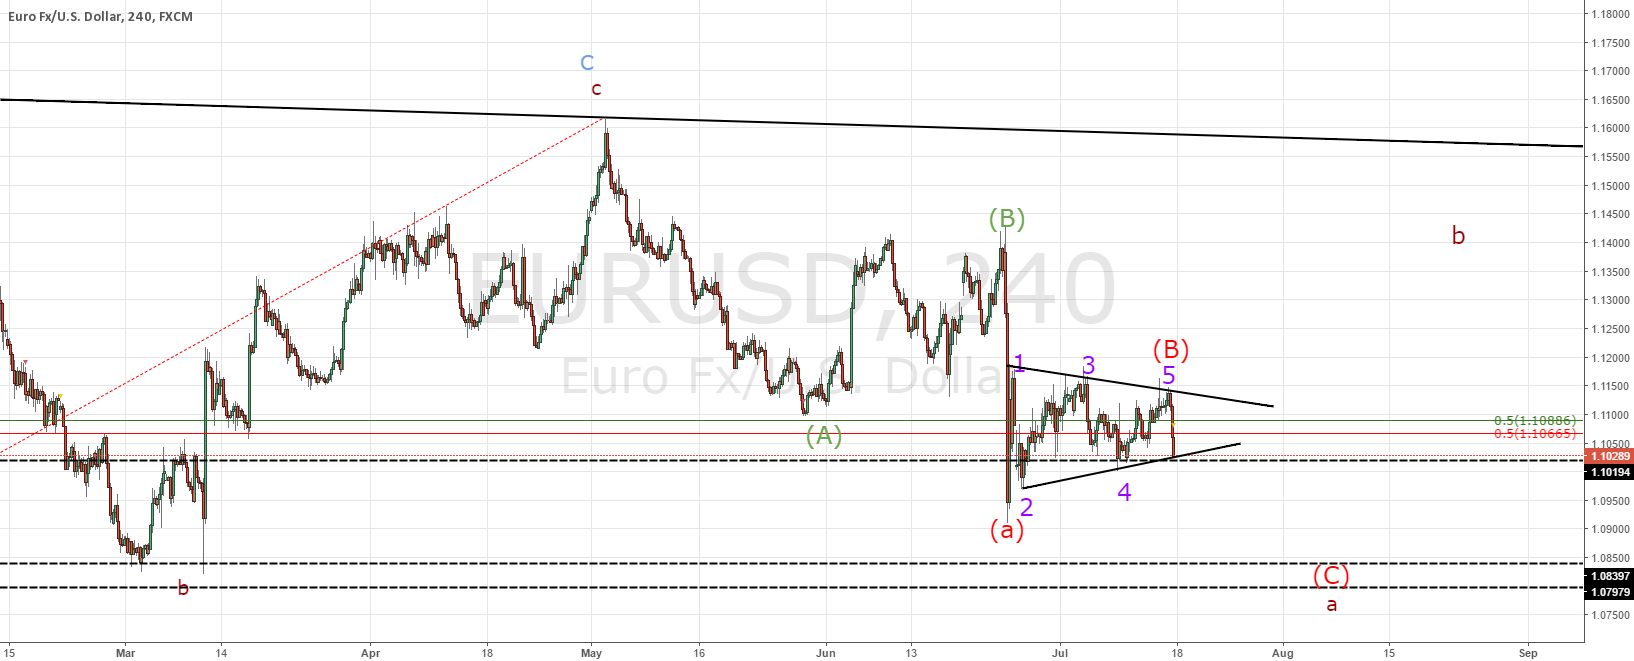 EURUSD ALTERNATIVE VIEW WITH SHORT TERM POTENTIAL TRADE SET UP